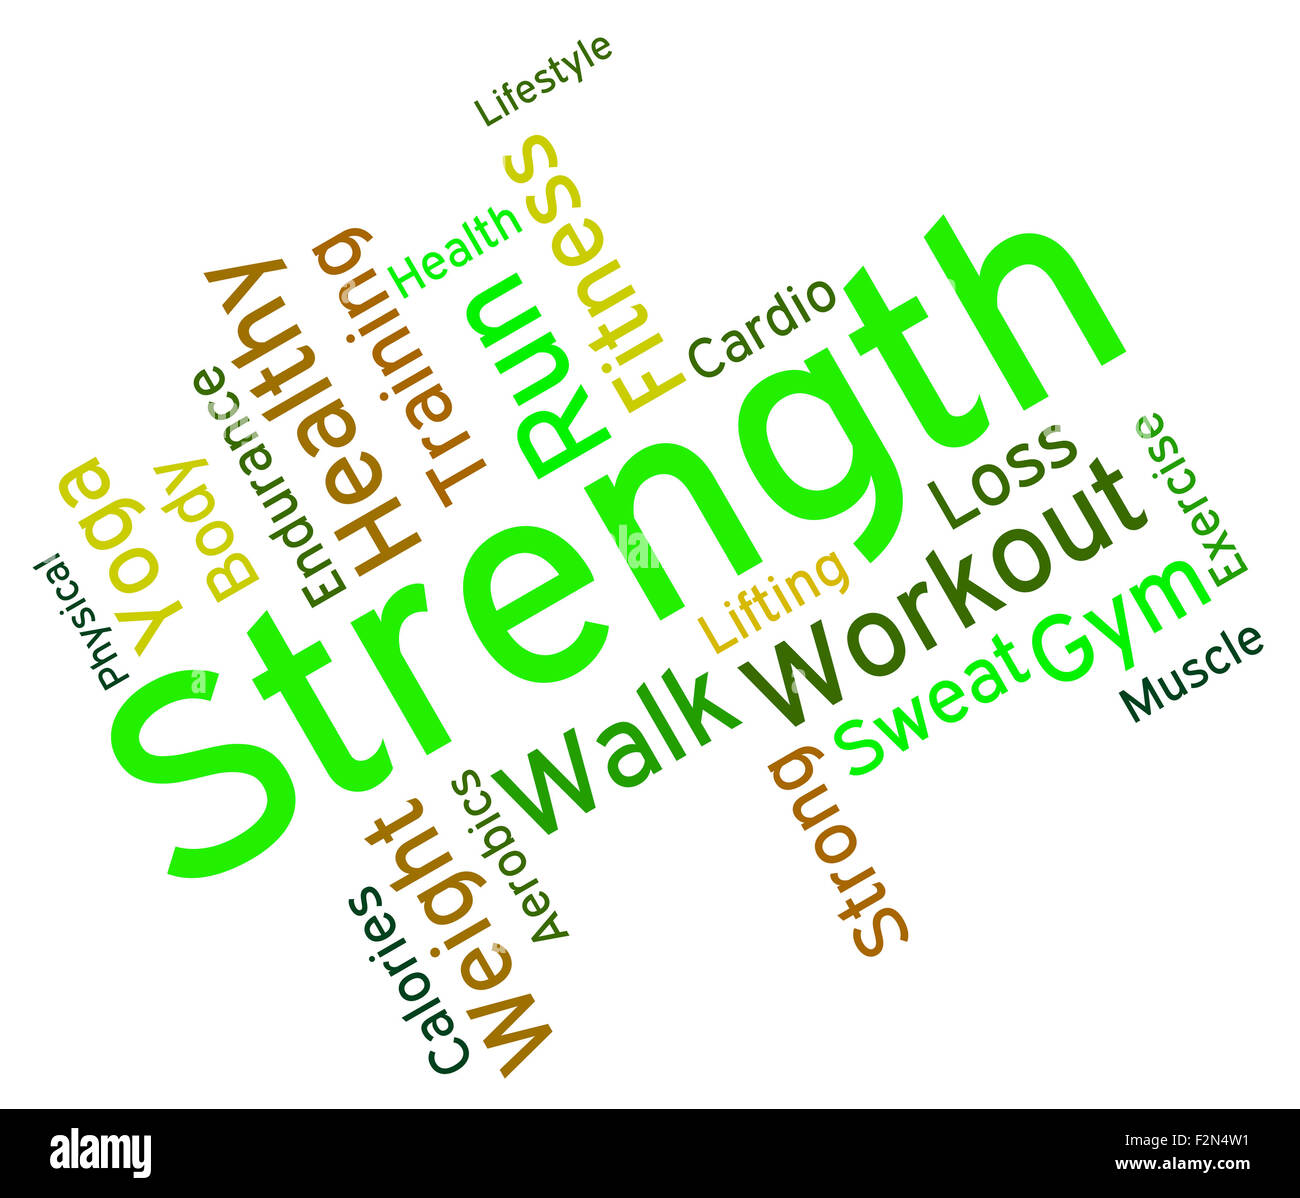 Strength Words Meaning Robust Might And Forceful - Stock Image